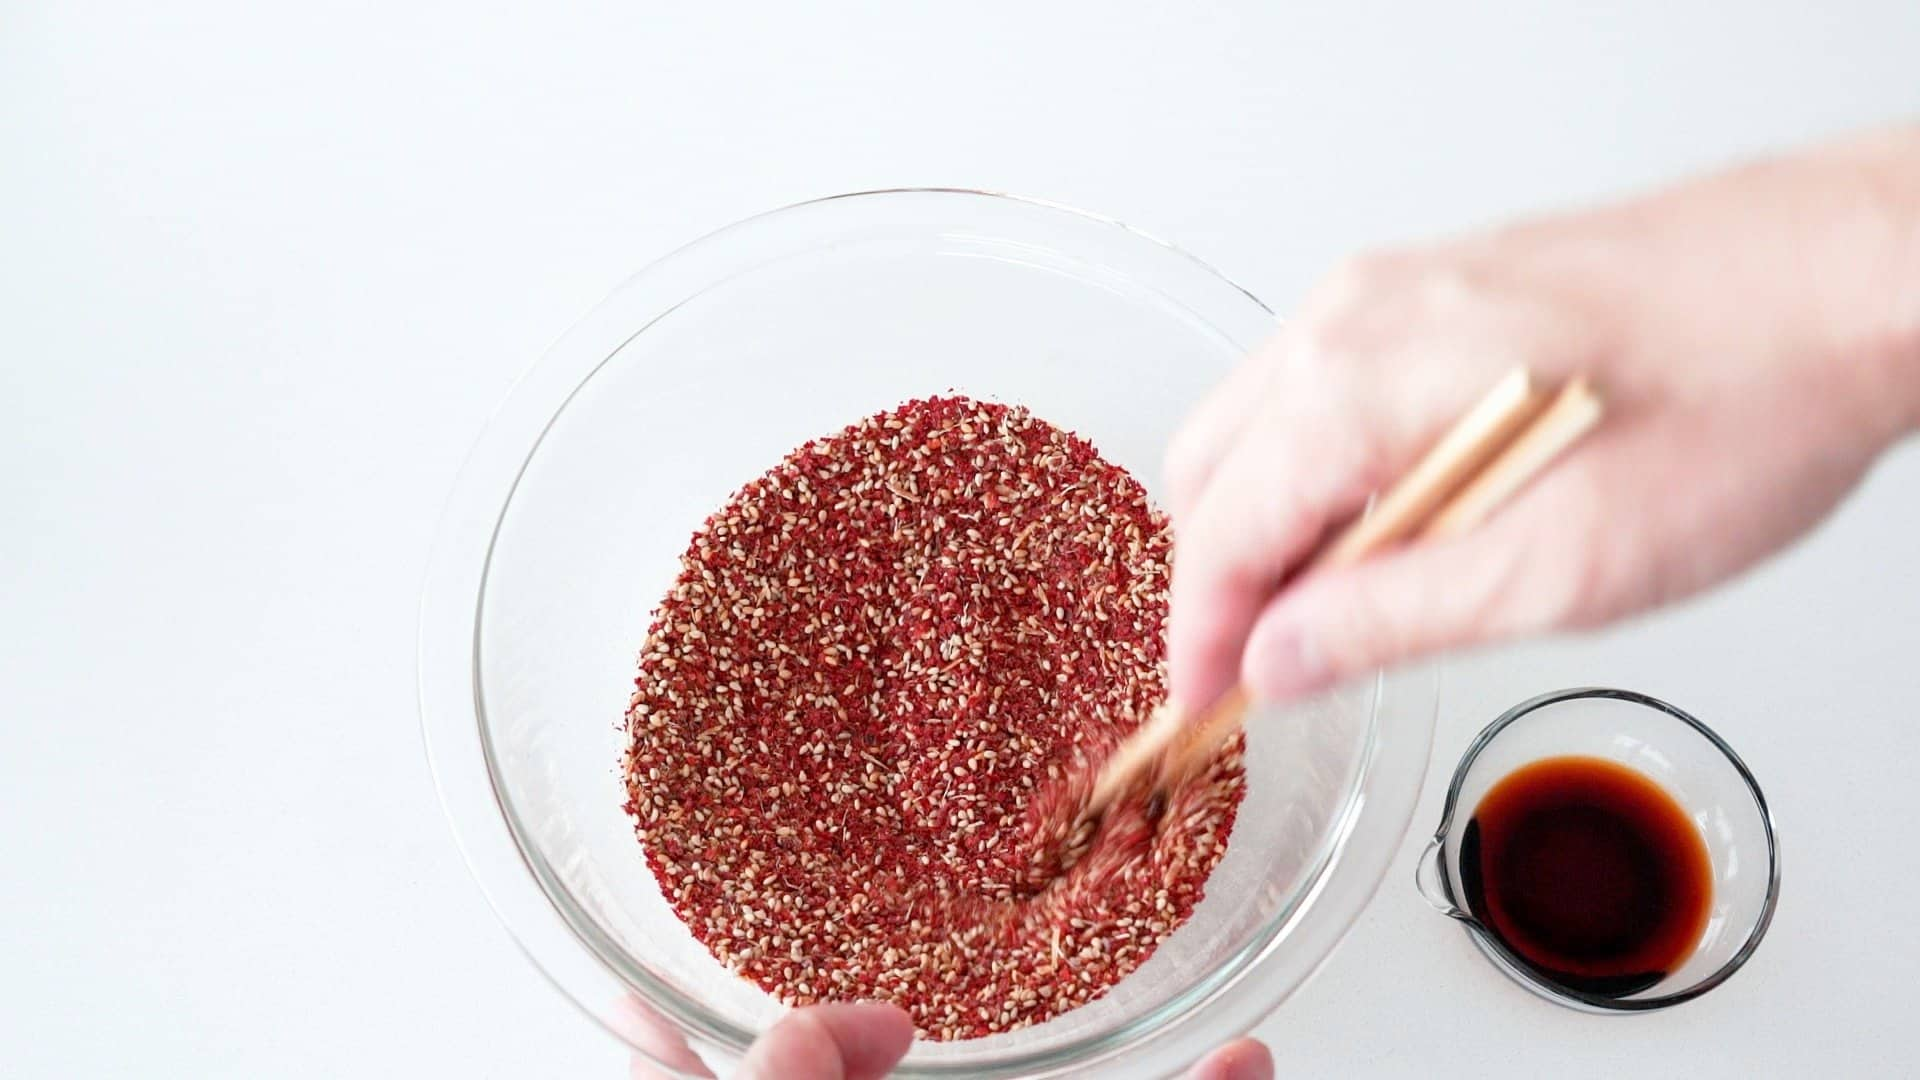 Mixing chili flakes, sesame seeds and spices together in a glass bowl for making chili oil